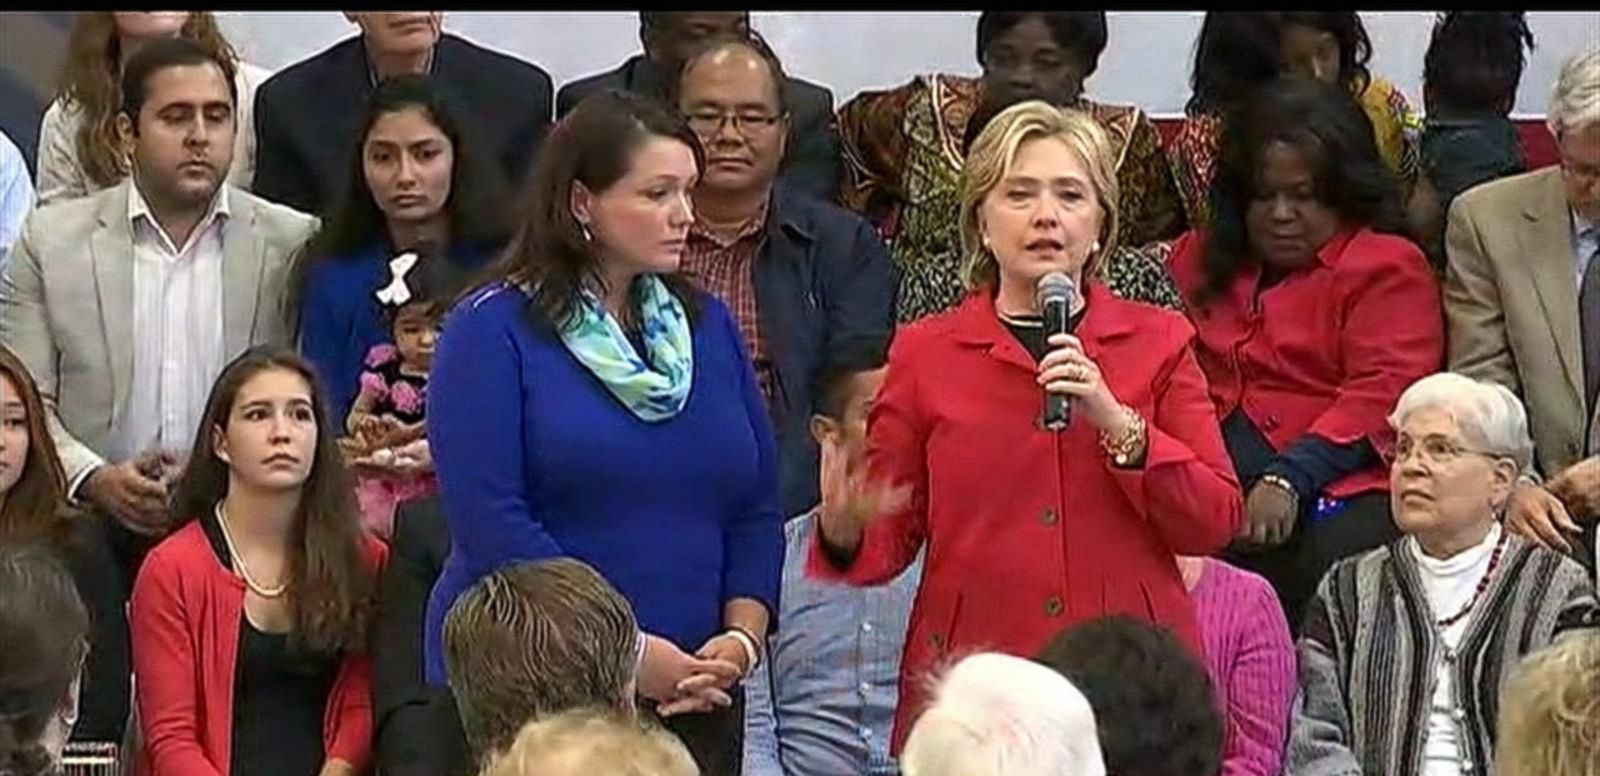 VIDEO: During a campaign event in New Hampshire on Monday, Clinton invited the mother of a 6-year-old boy killed in the Sandy Hook shooting to join her on stage to discuss gun control.